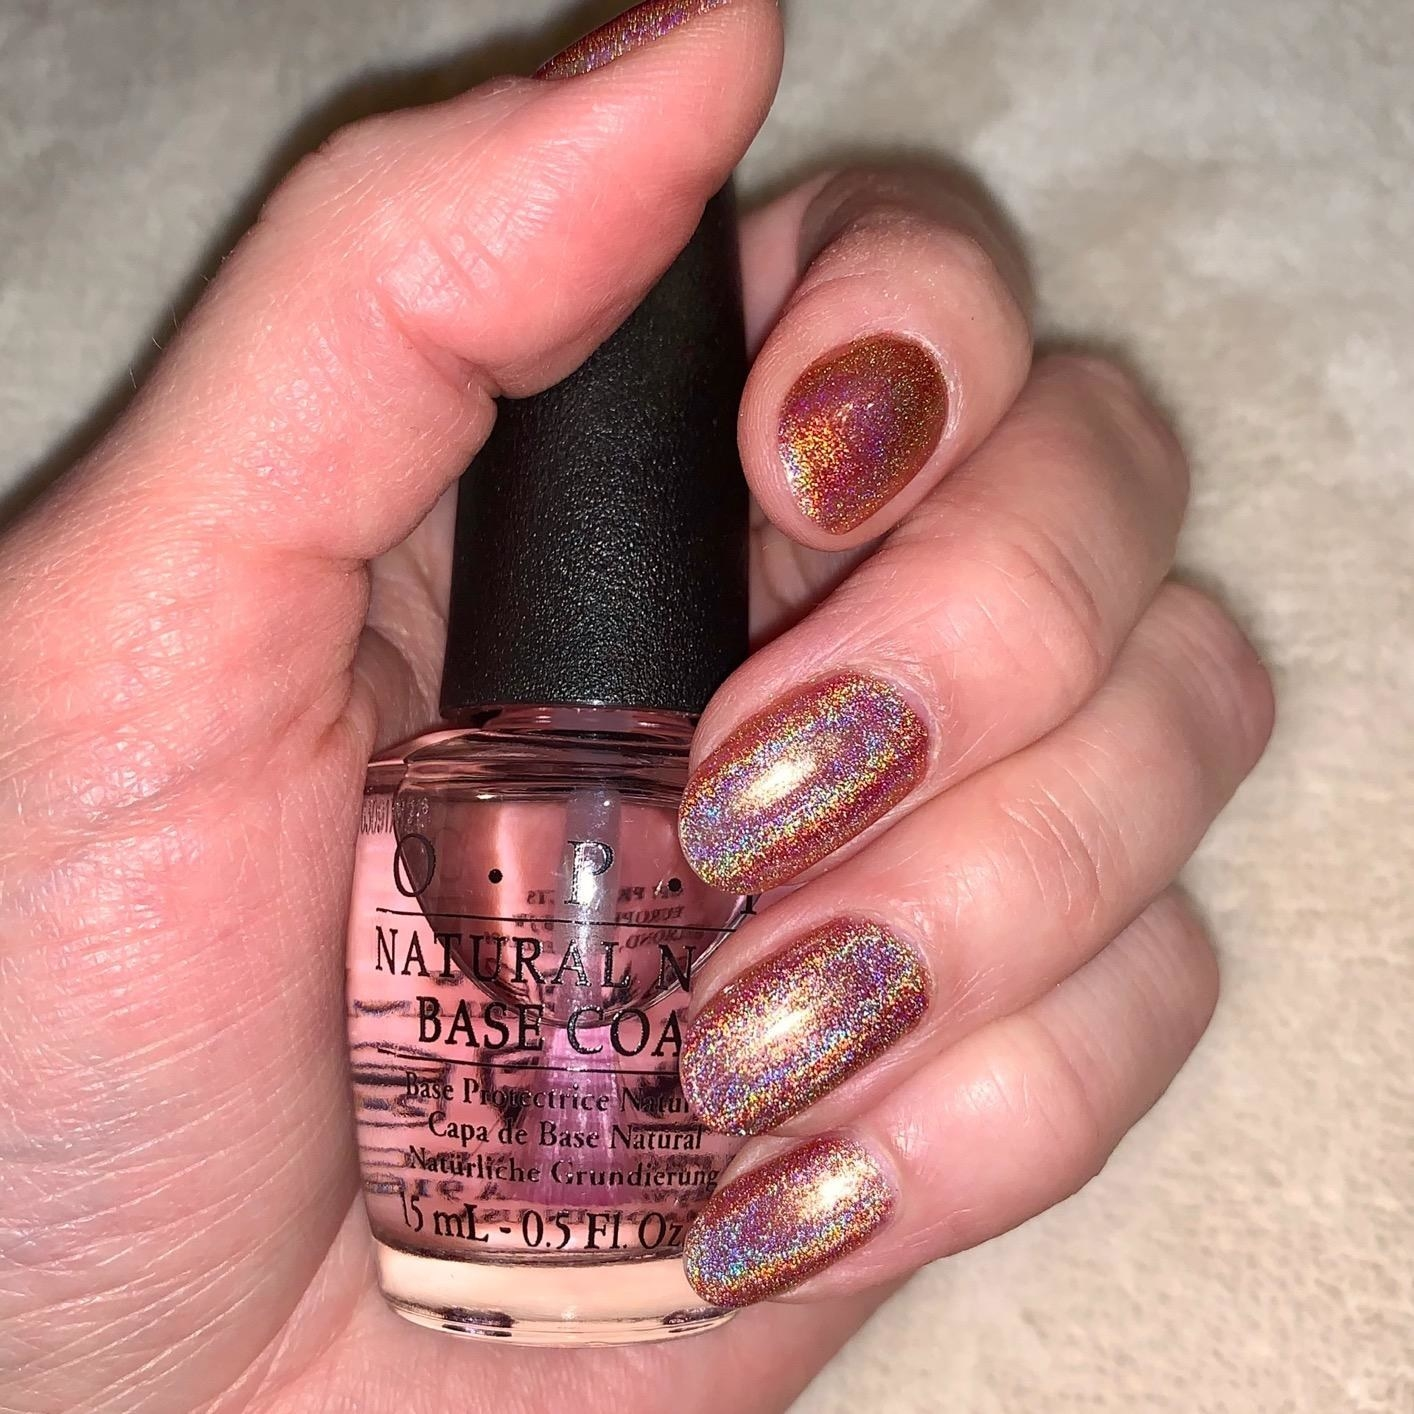 reviewer holding bottle of OPI Natural Nail Base Coat in hand with rose gold mani